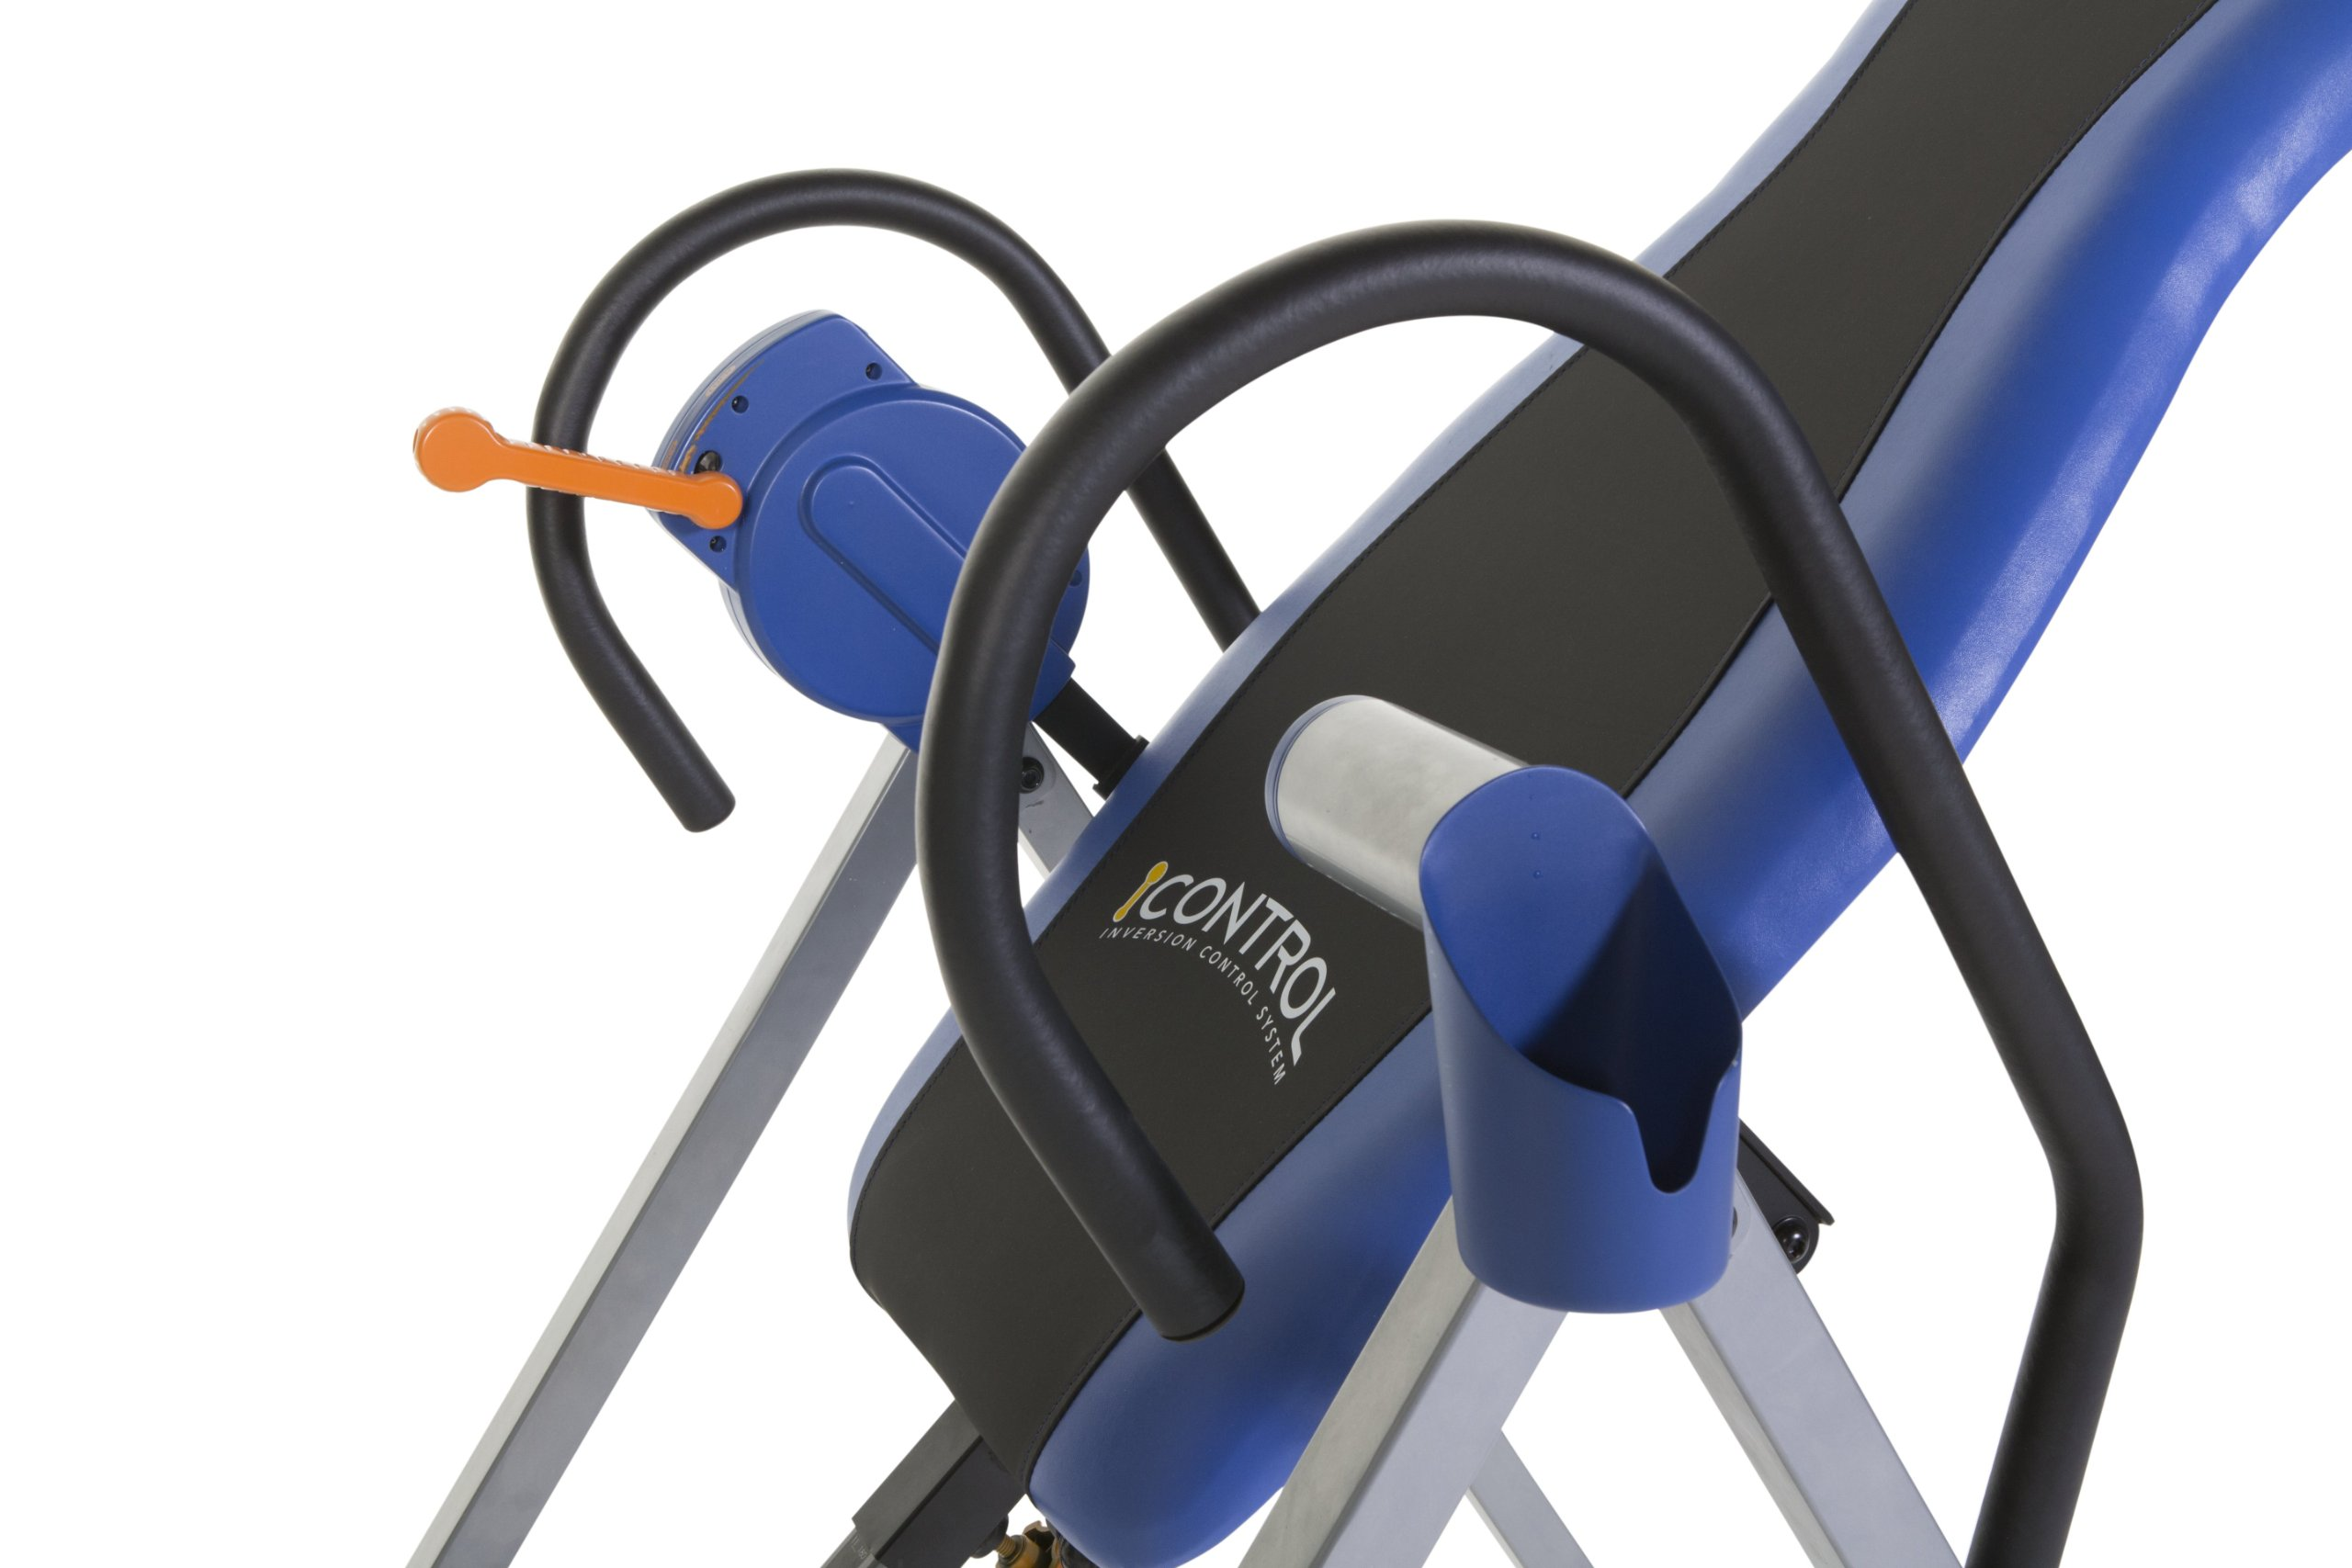 Ironman iControl 400 Disk Brake System Inversion Table by IRONMAN (Image #7)